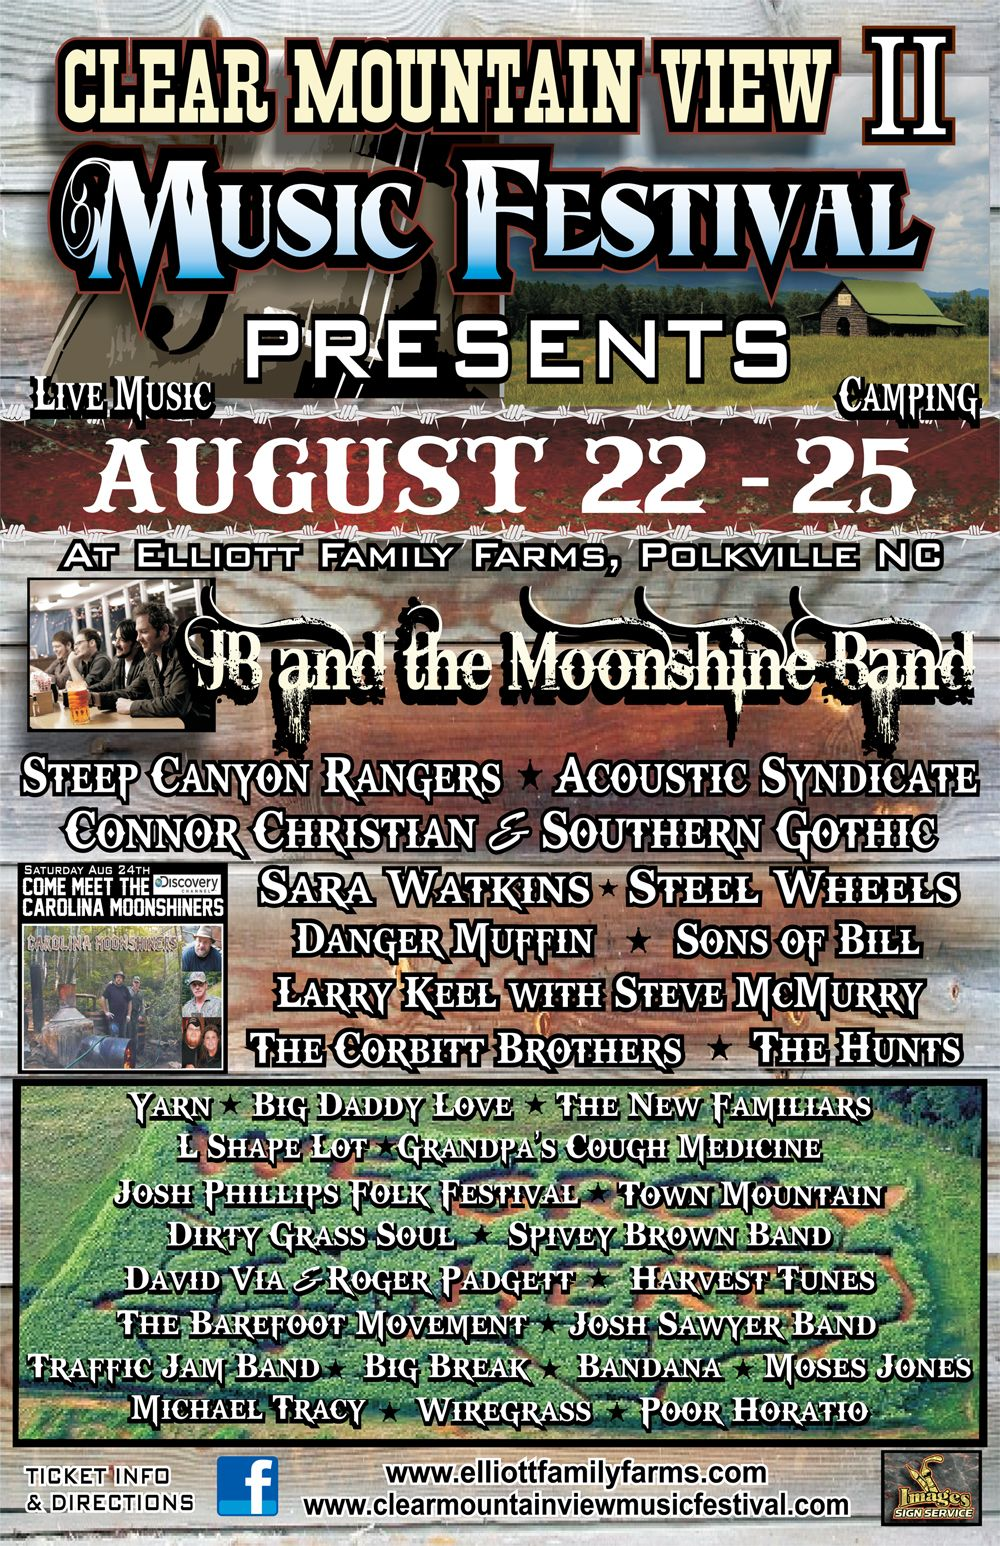 Clear Mountain View Music Festival LineUp August 2225